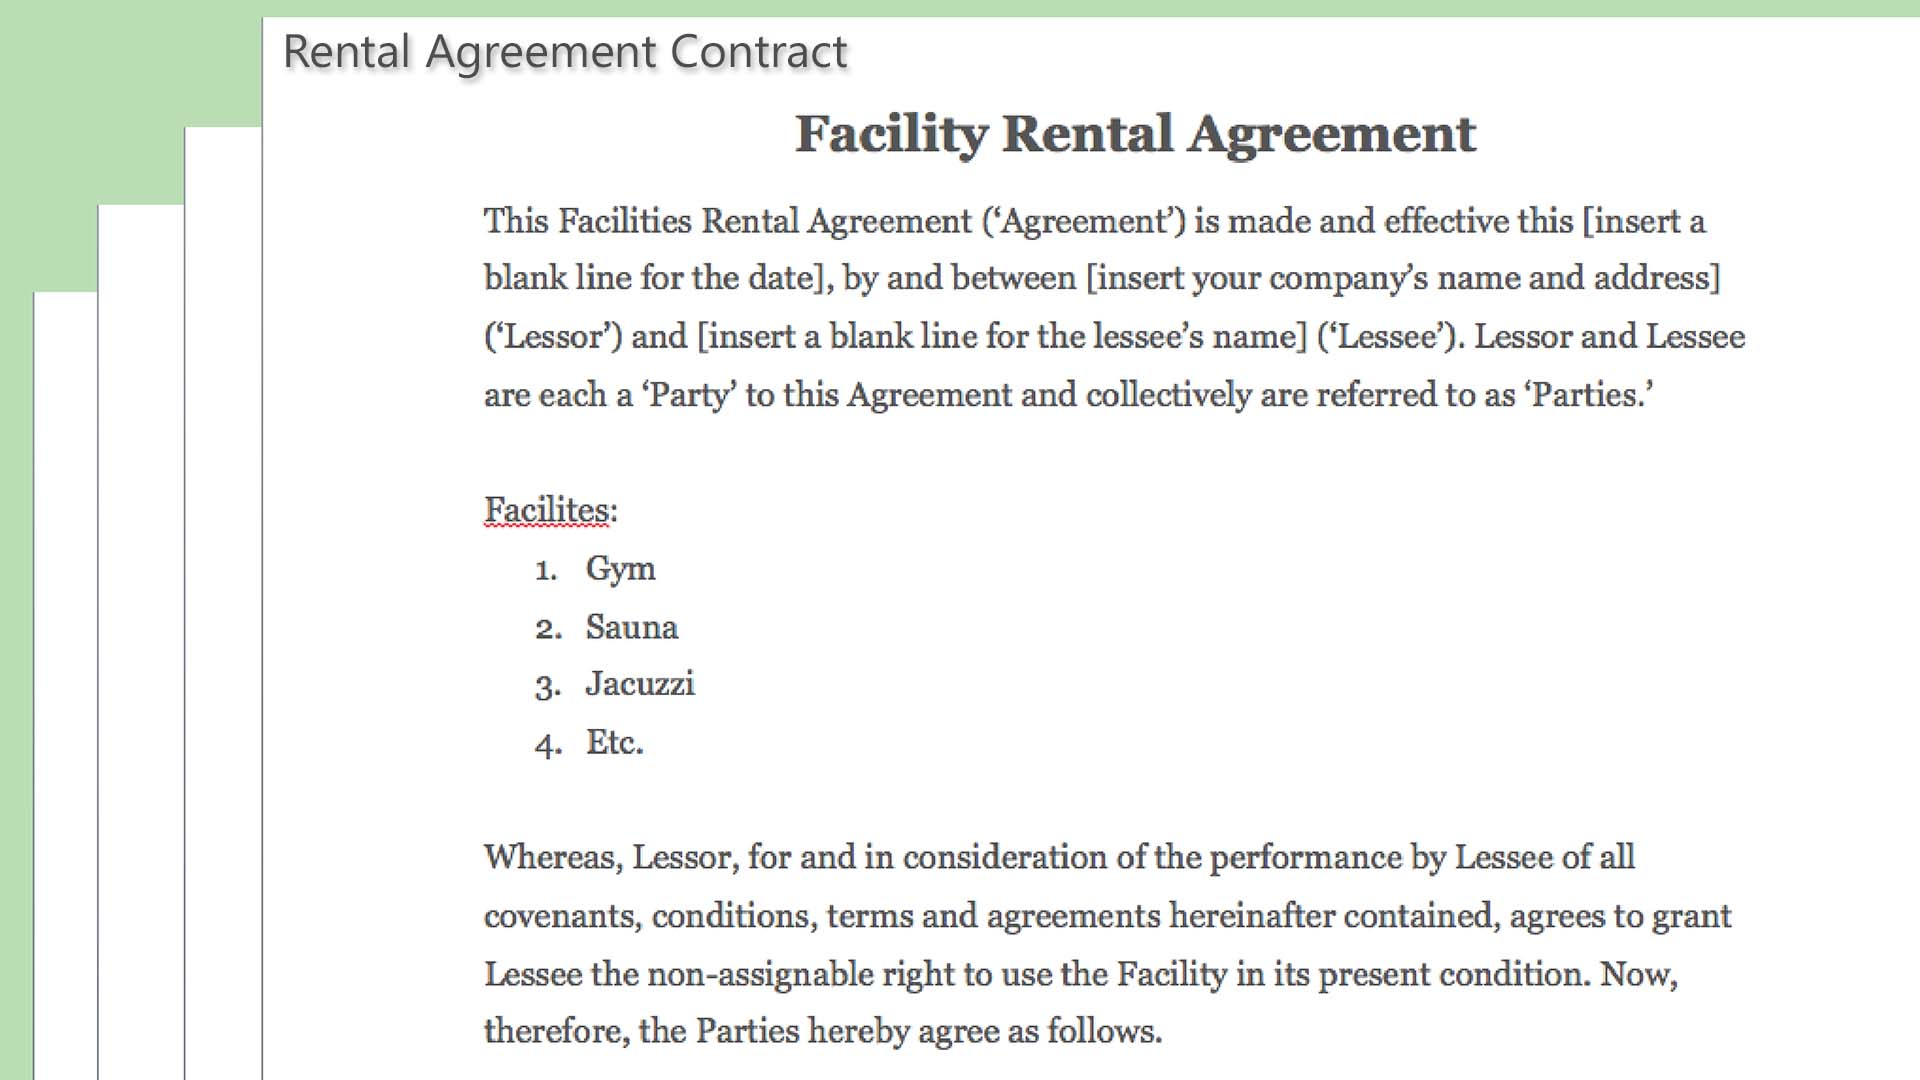 Rental Agreement Contract Rental Agreement Contract Construction Forum